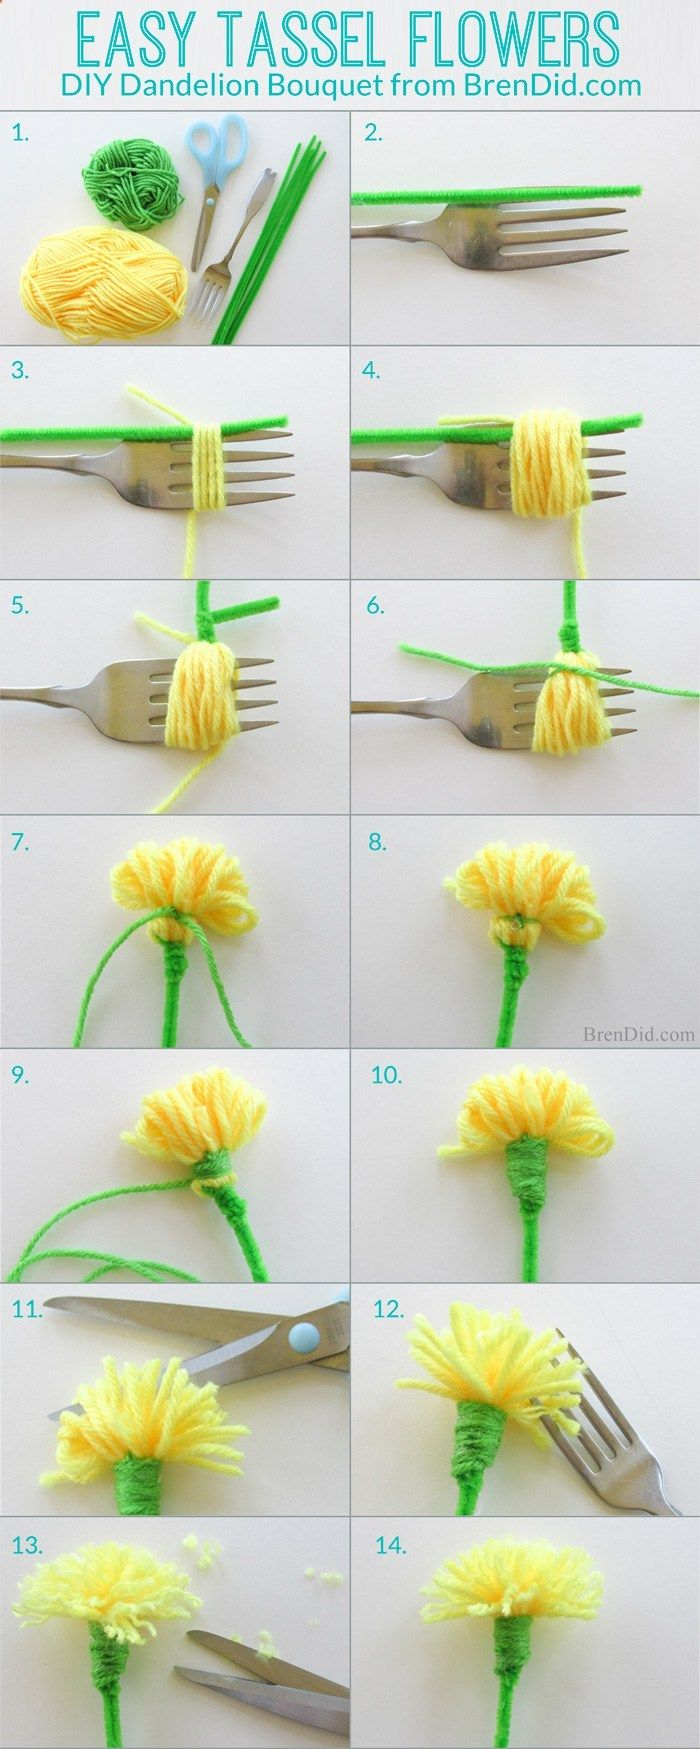 How to make tassel flowers - Make an easy DIY dandelion bouquest with yarn and pipe cleaners to delight someone you love. Perfect for weddings, parties and Mothers Day. DIY Flowers